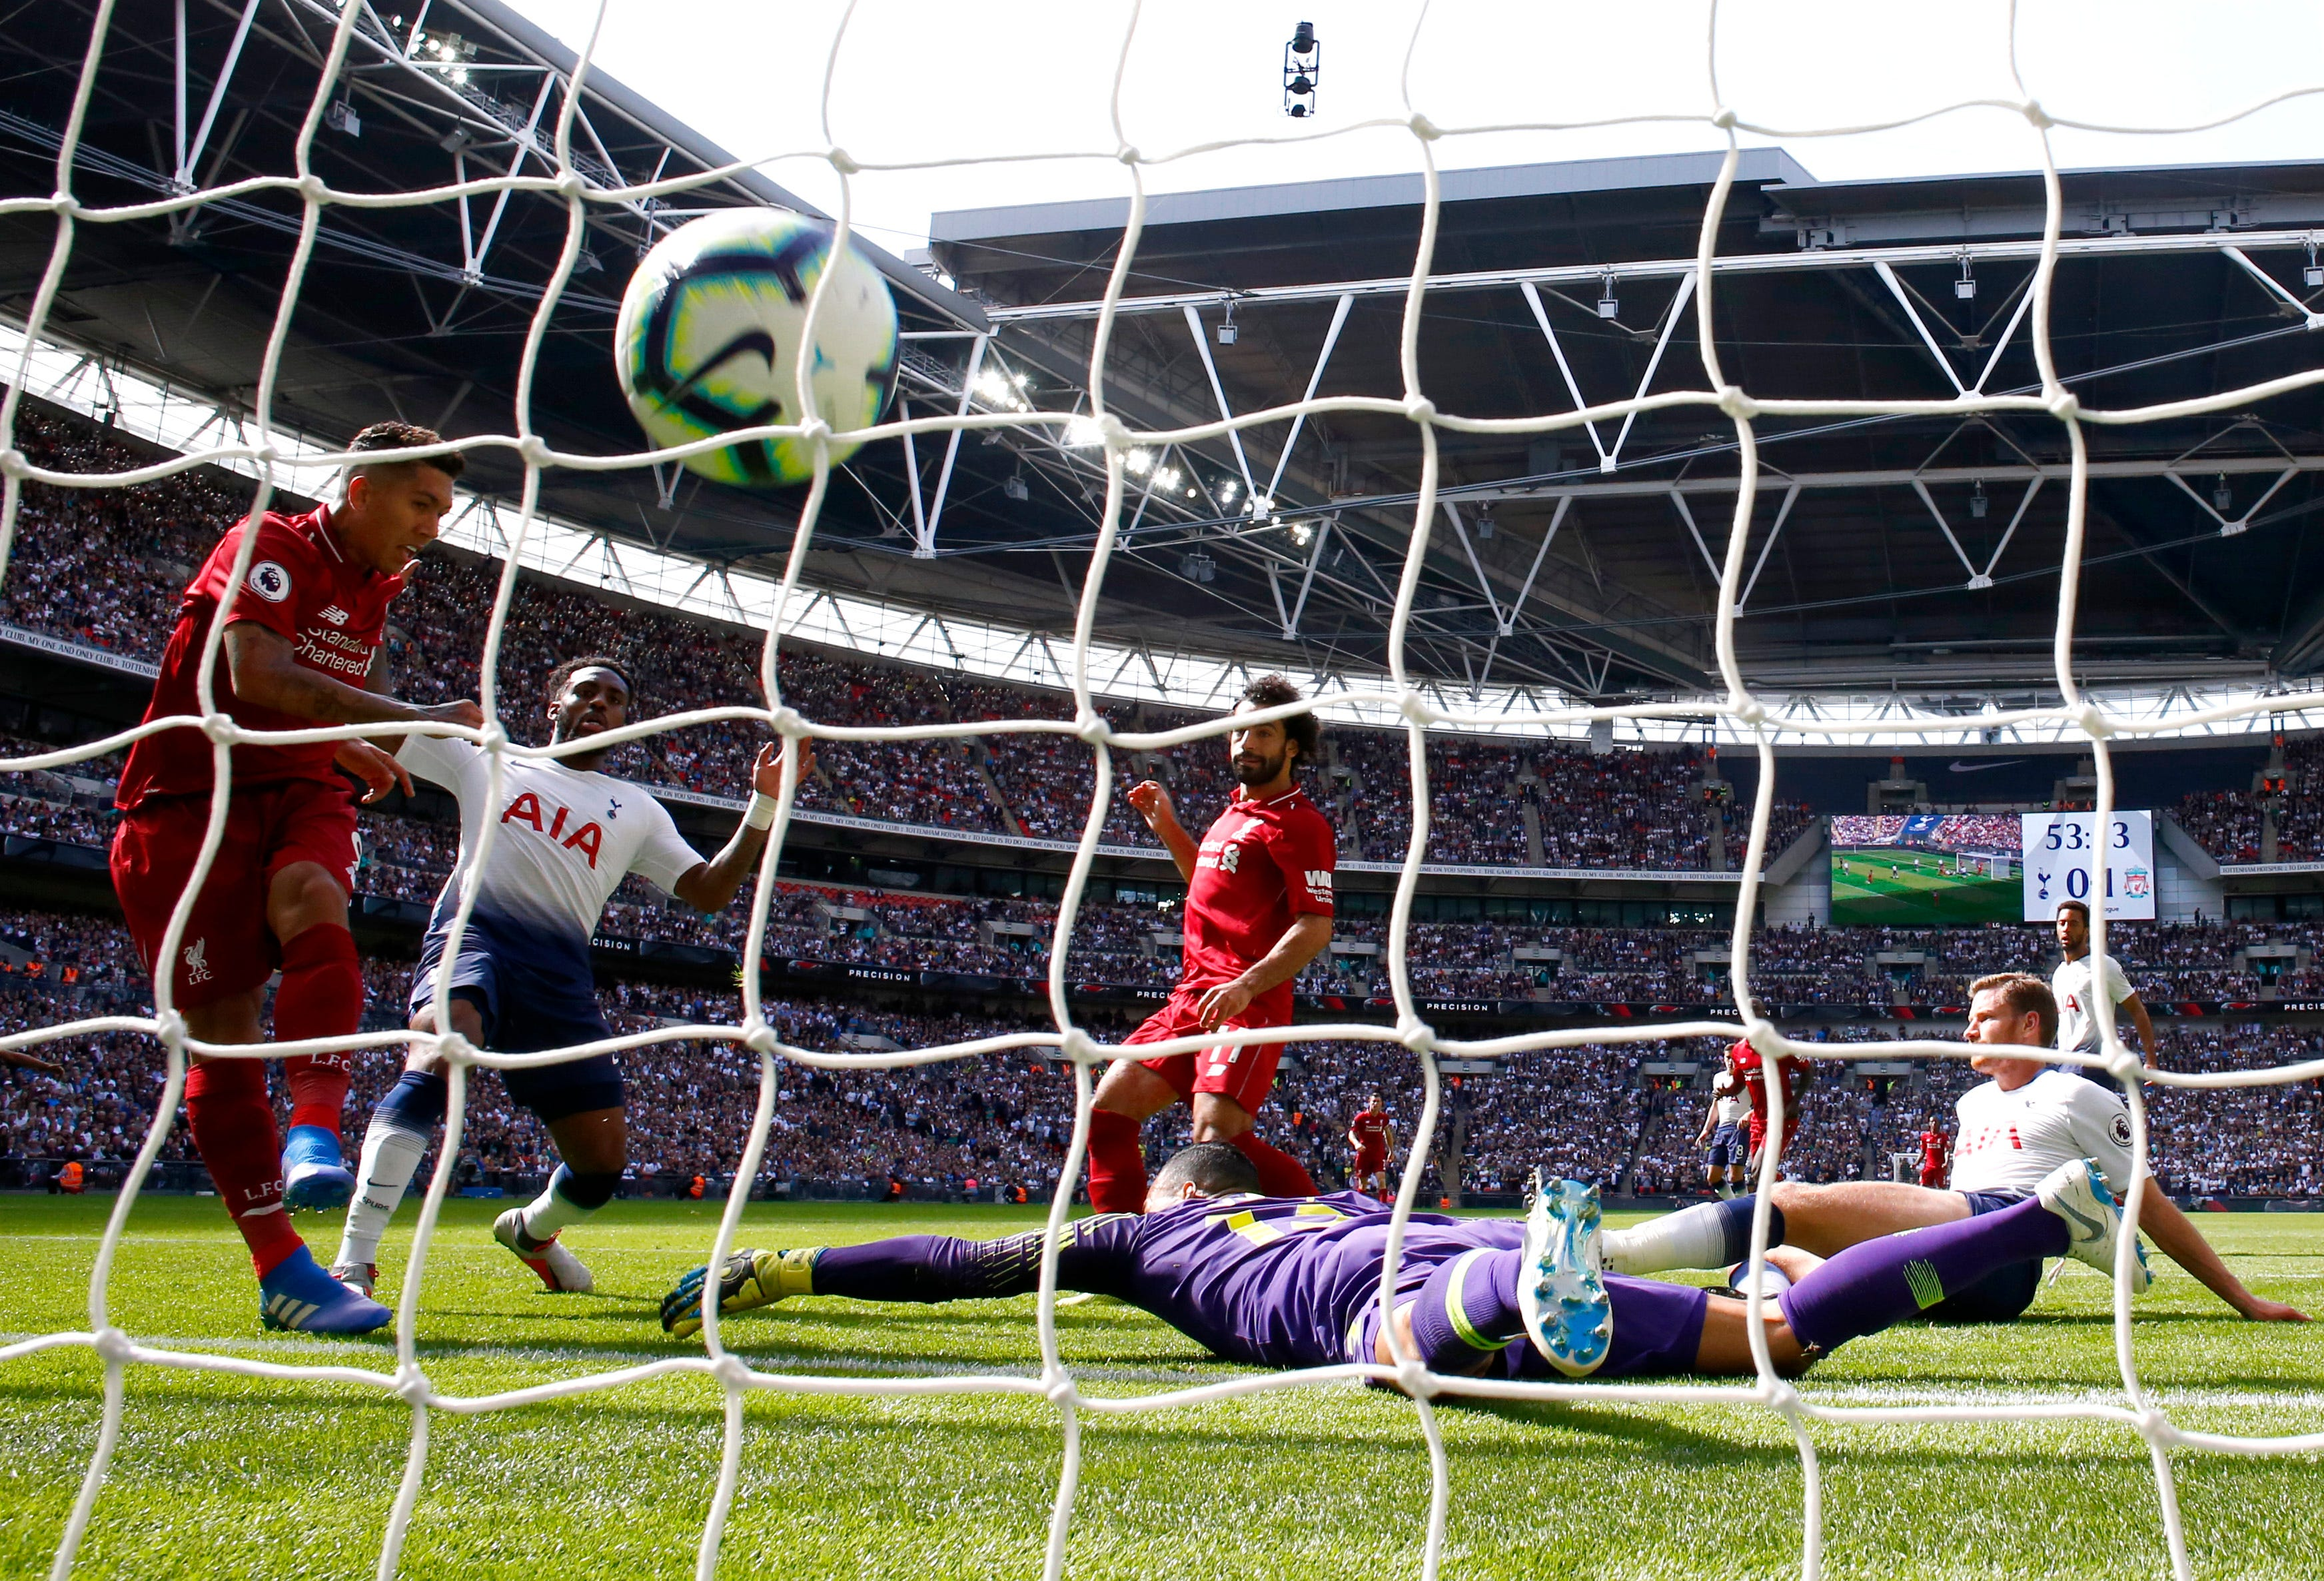 Roberto Firmino of Liverpool scores his team's second goal against Tottenham Hotspur at Wembley Stadium. Liverpool won the match, 2-1.